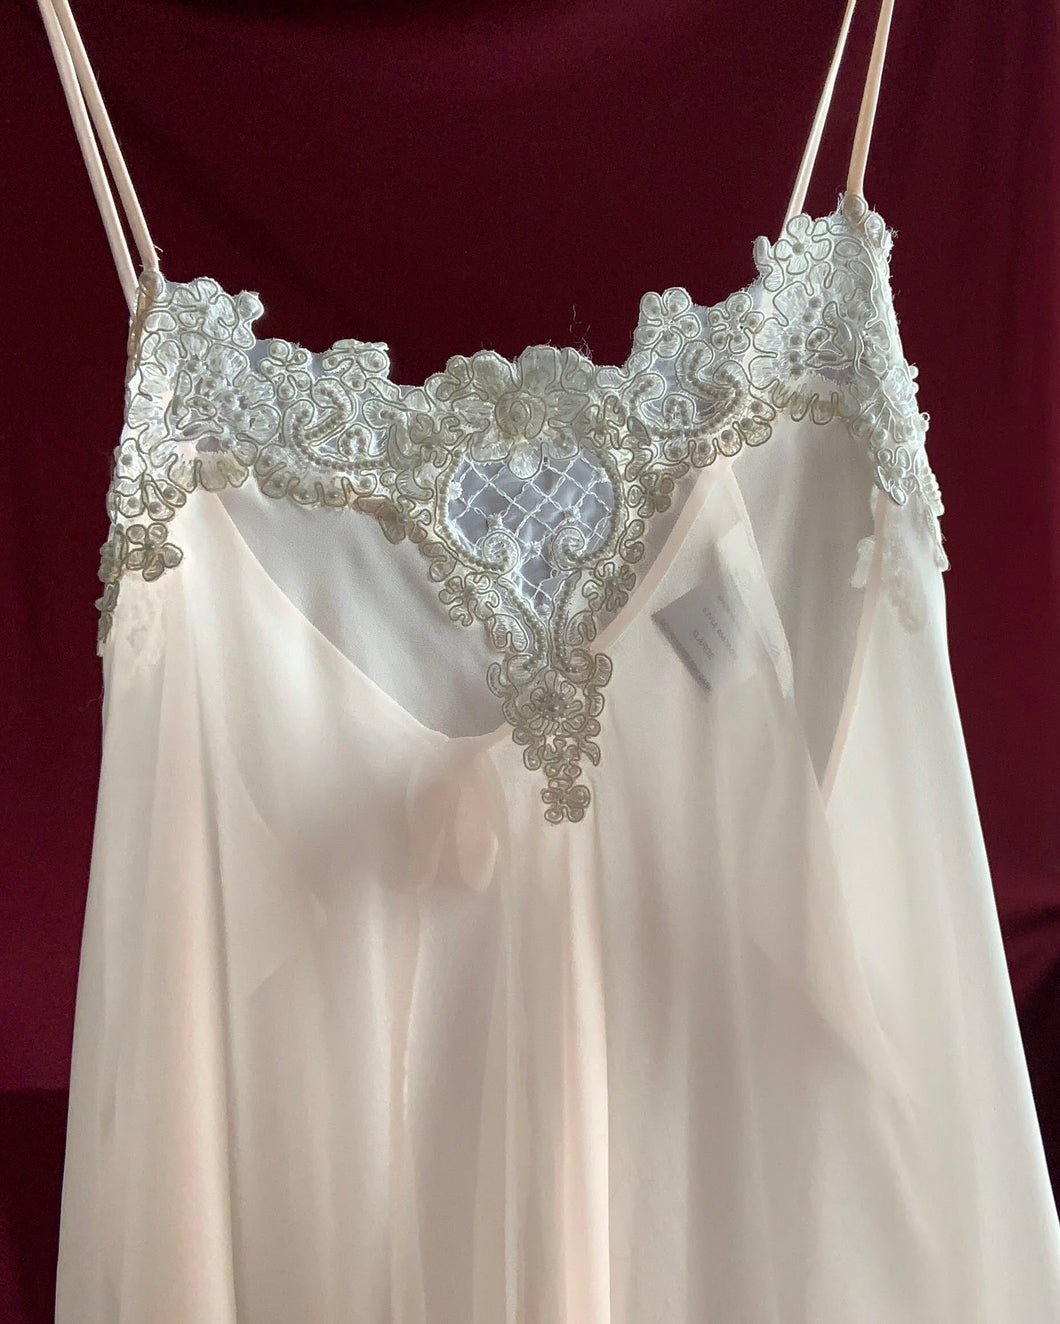 Vintage Sheer Light Pink Slip with Embroidery & Pearls